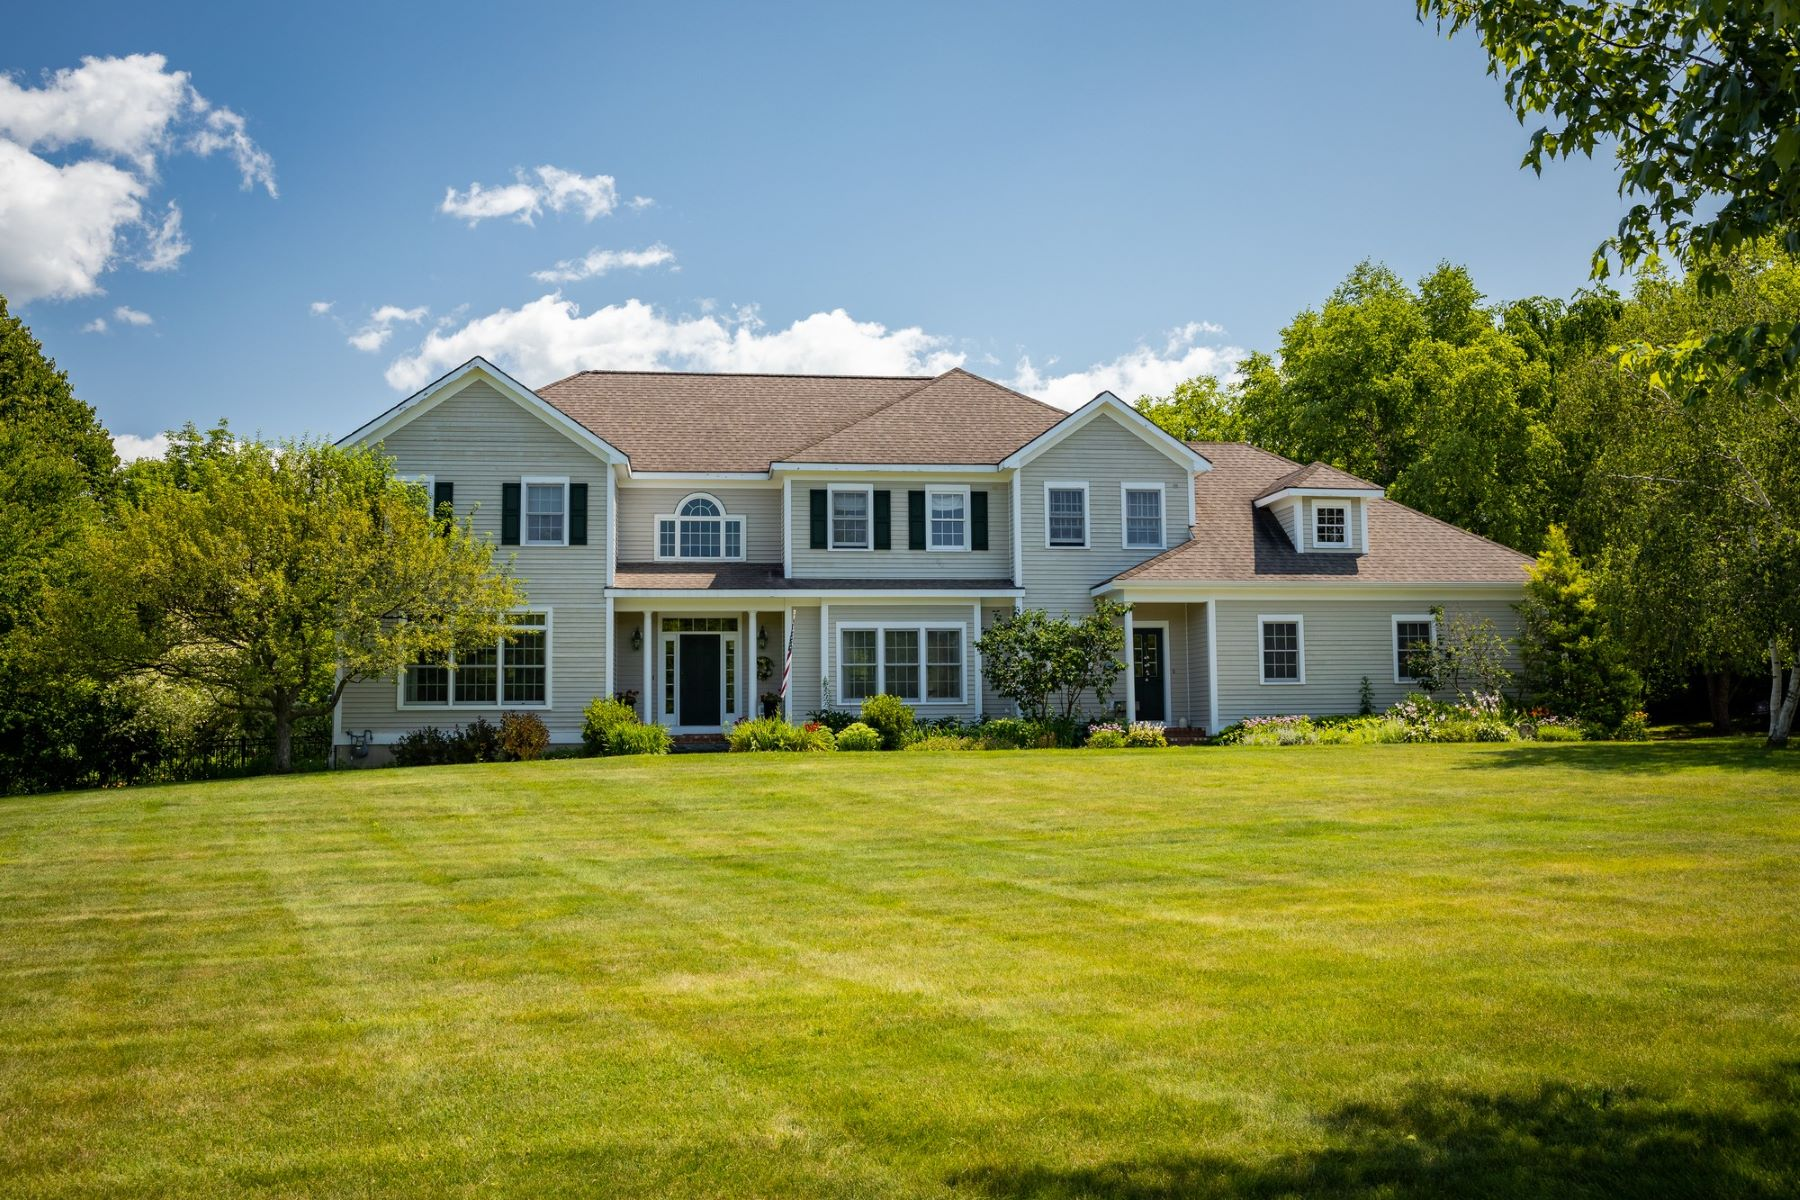 Single Family Homes for Sale at 587 Ridgefield Road, Shelburne 587 Ridgefield Rd Shelburne, Vermont 05482 United States